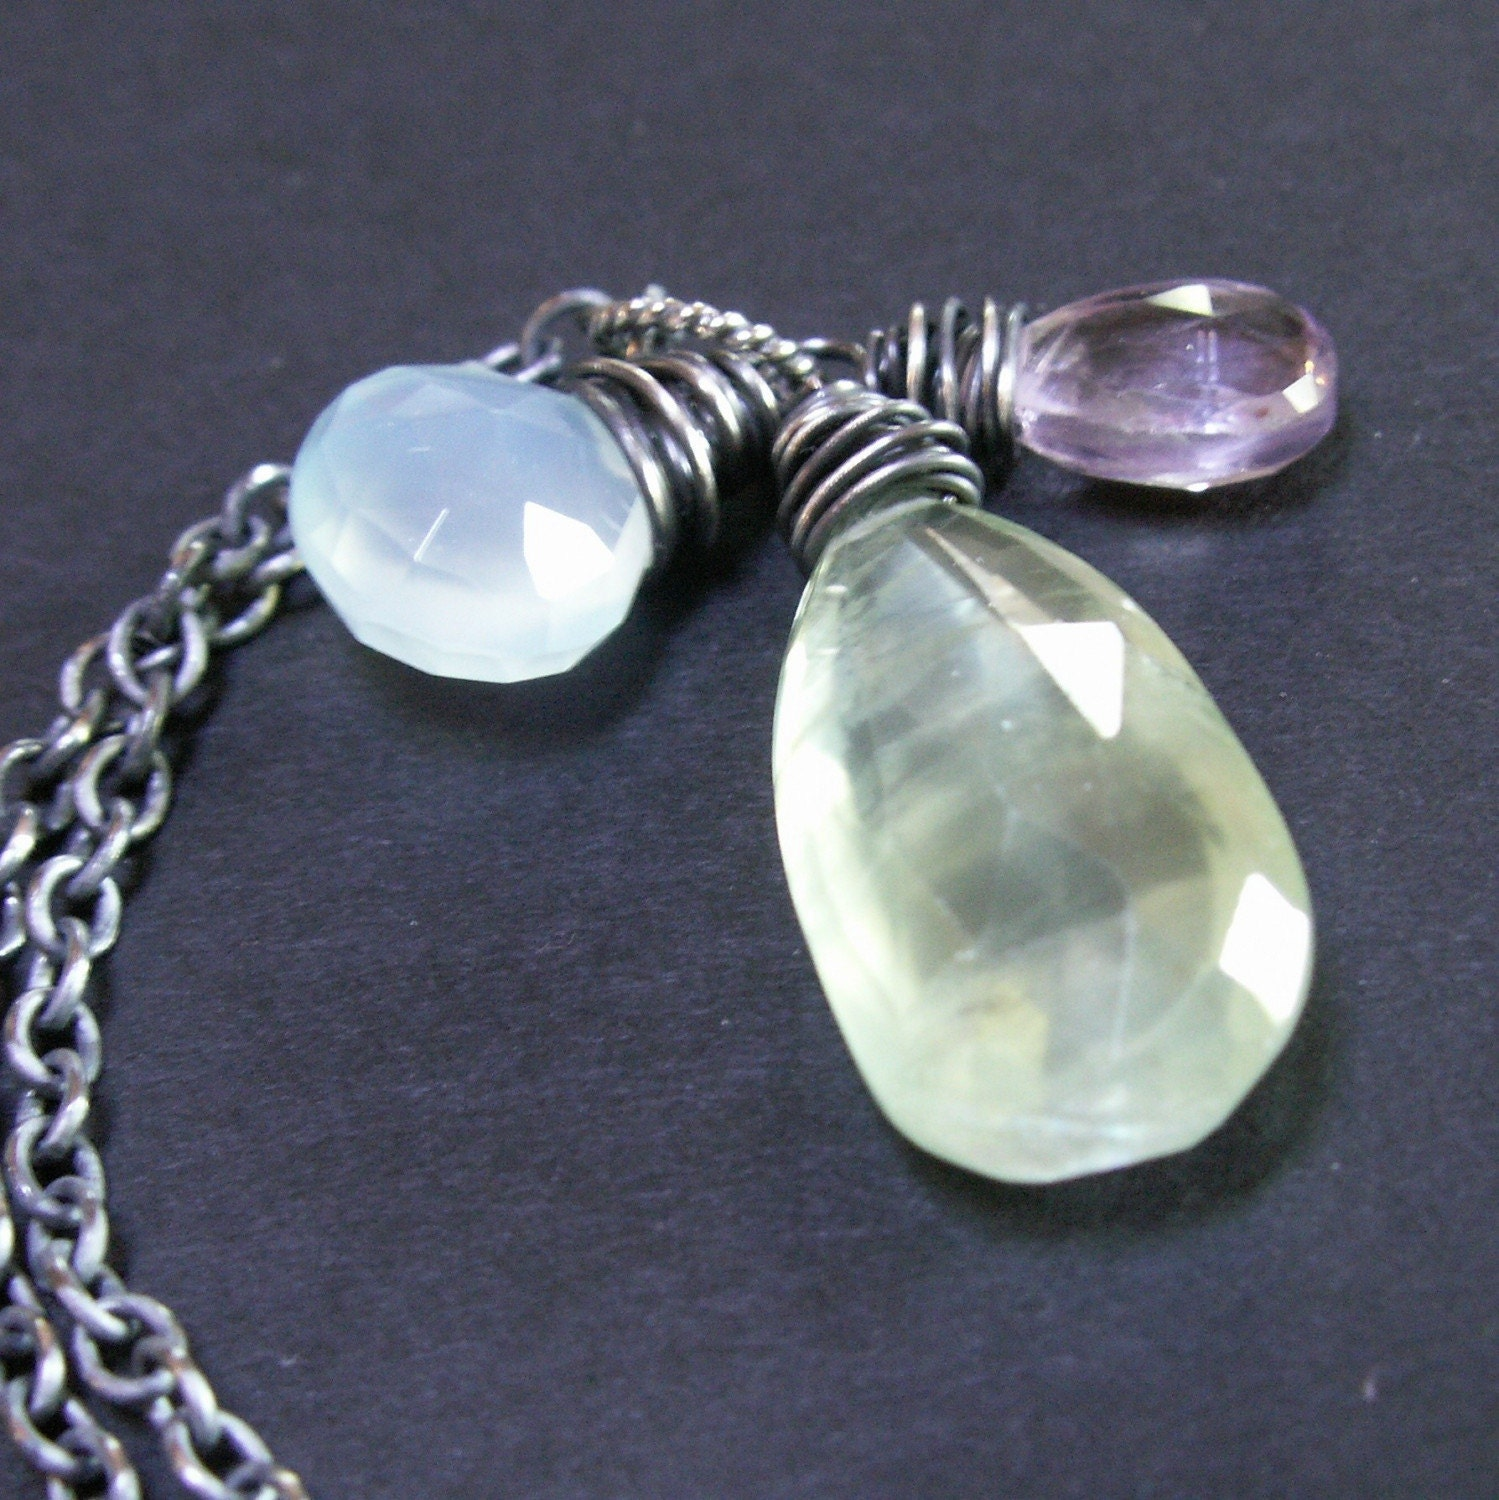 handcrafted jewelry necklace sterling silver oxidized prehnite chalcedony amethyst